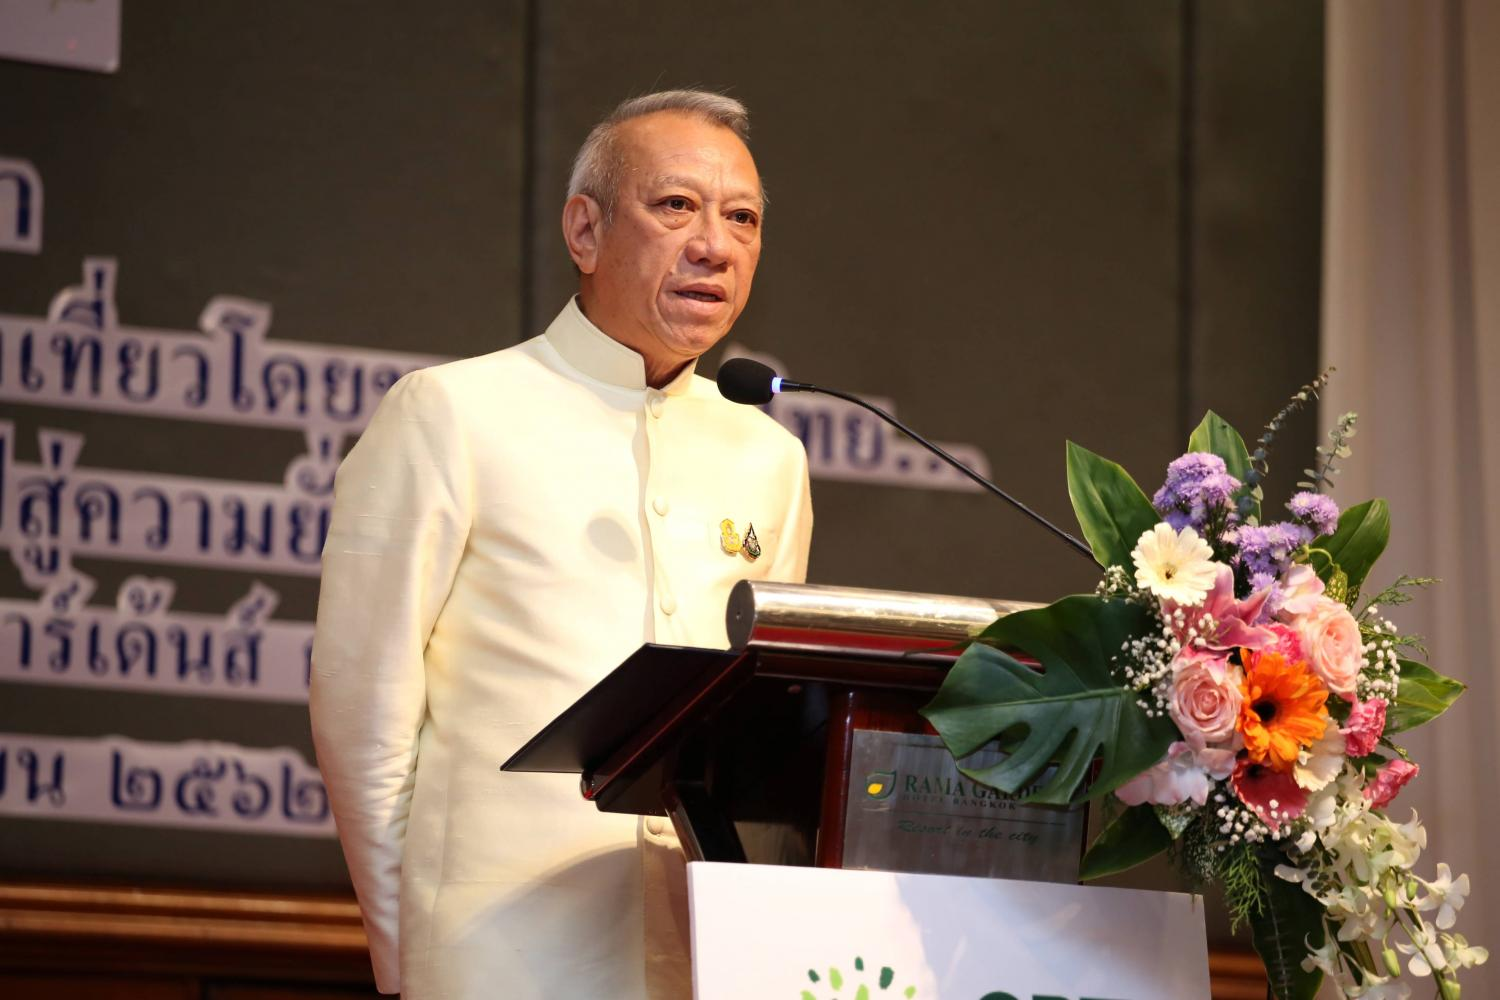 Tourism and sports minister Phiphat Ratchakitprakarn